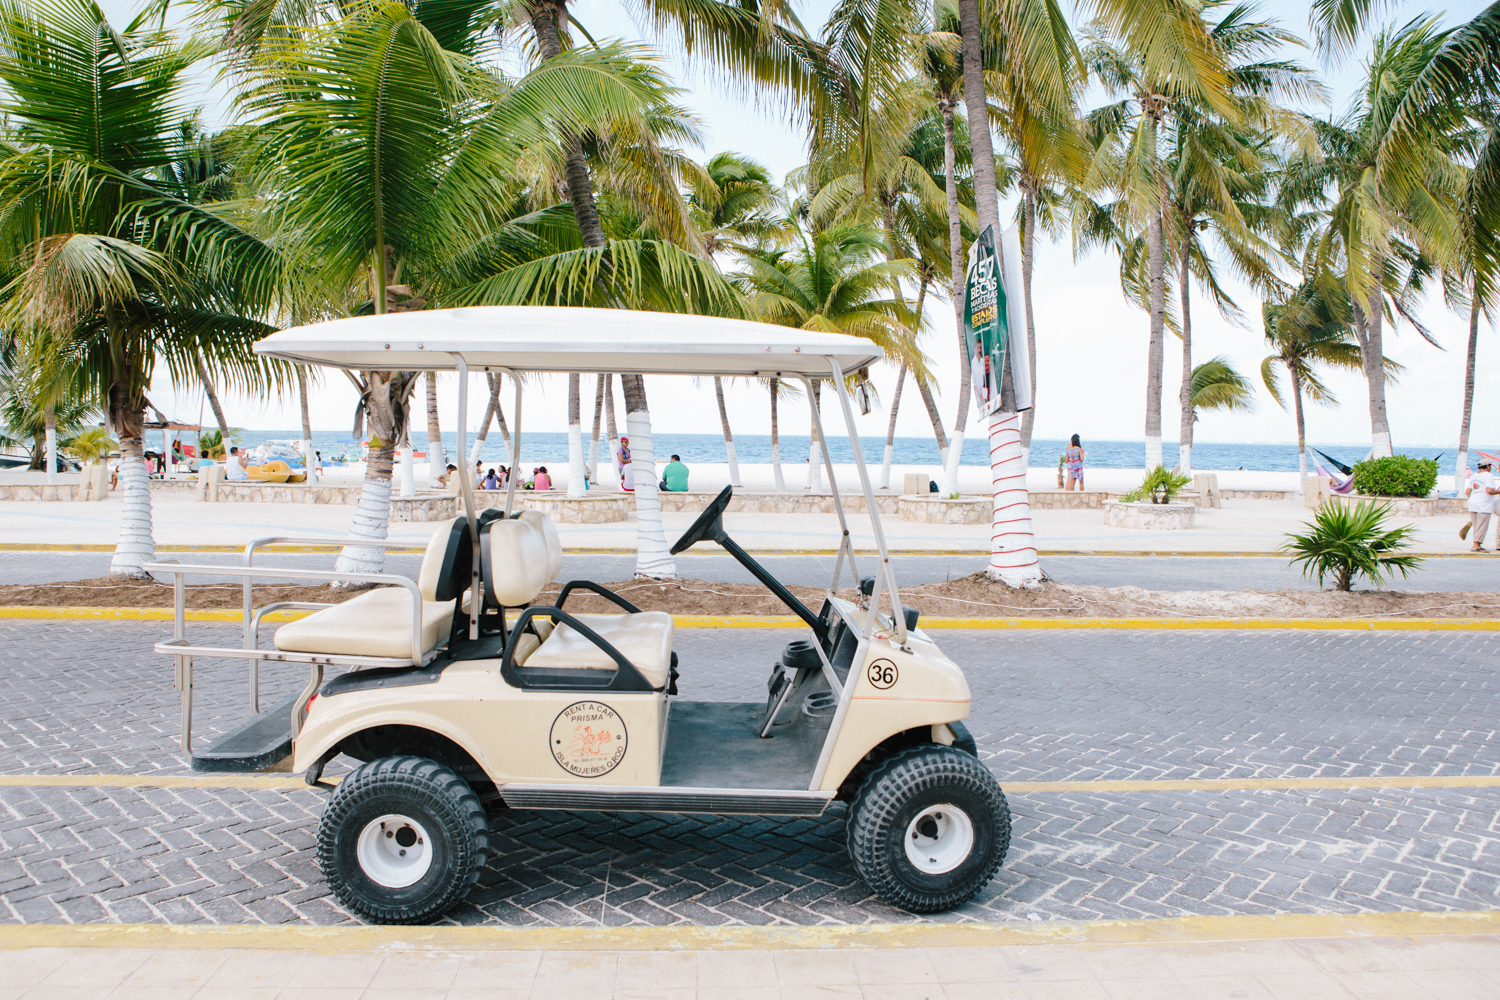 With the exception of taxis, cars are not allowed on the island. My freshly rented golf cart.